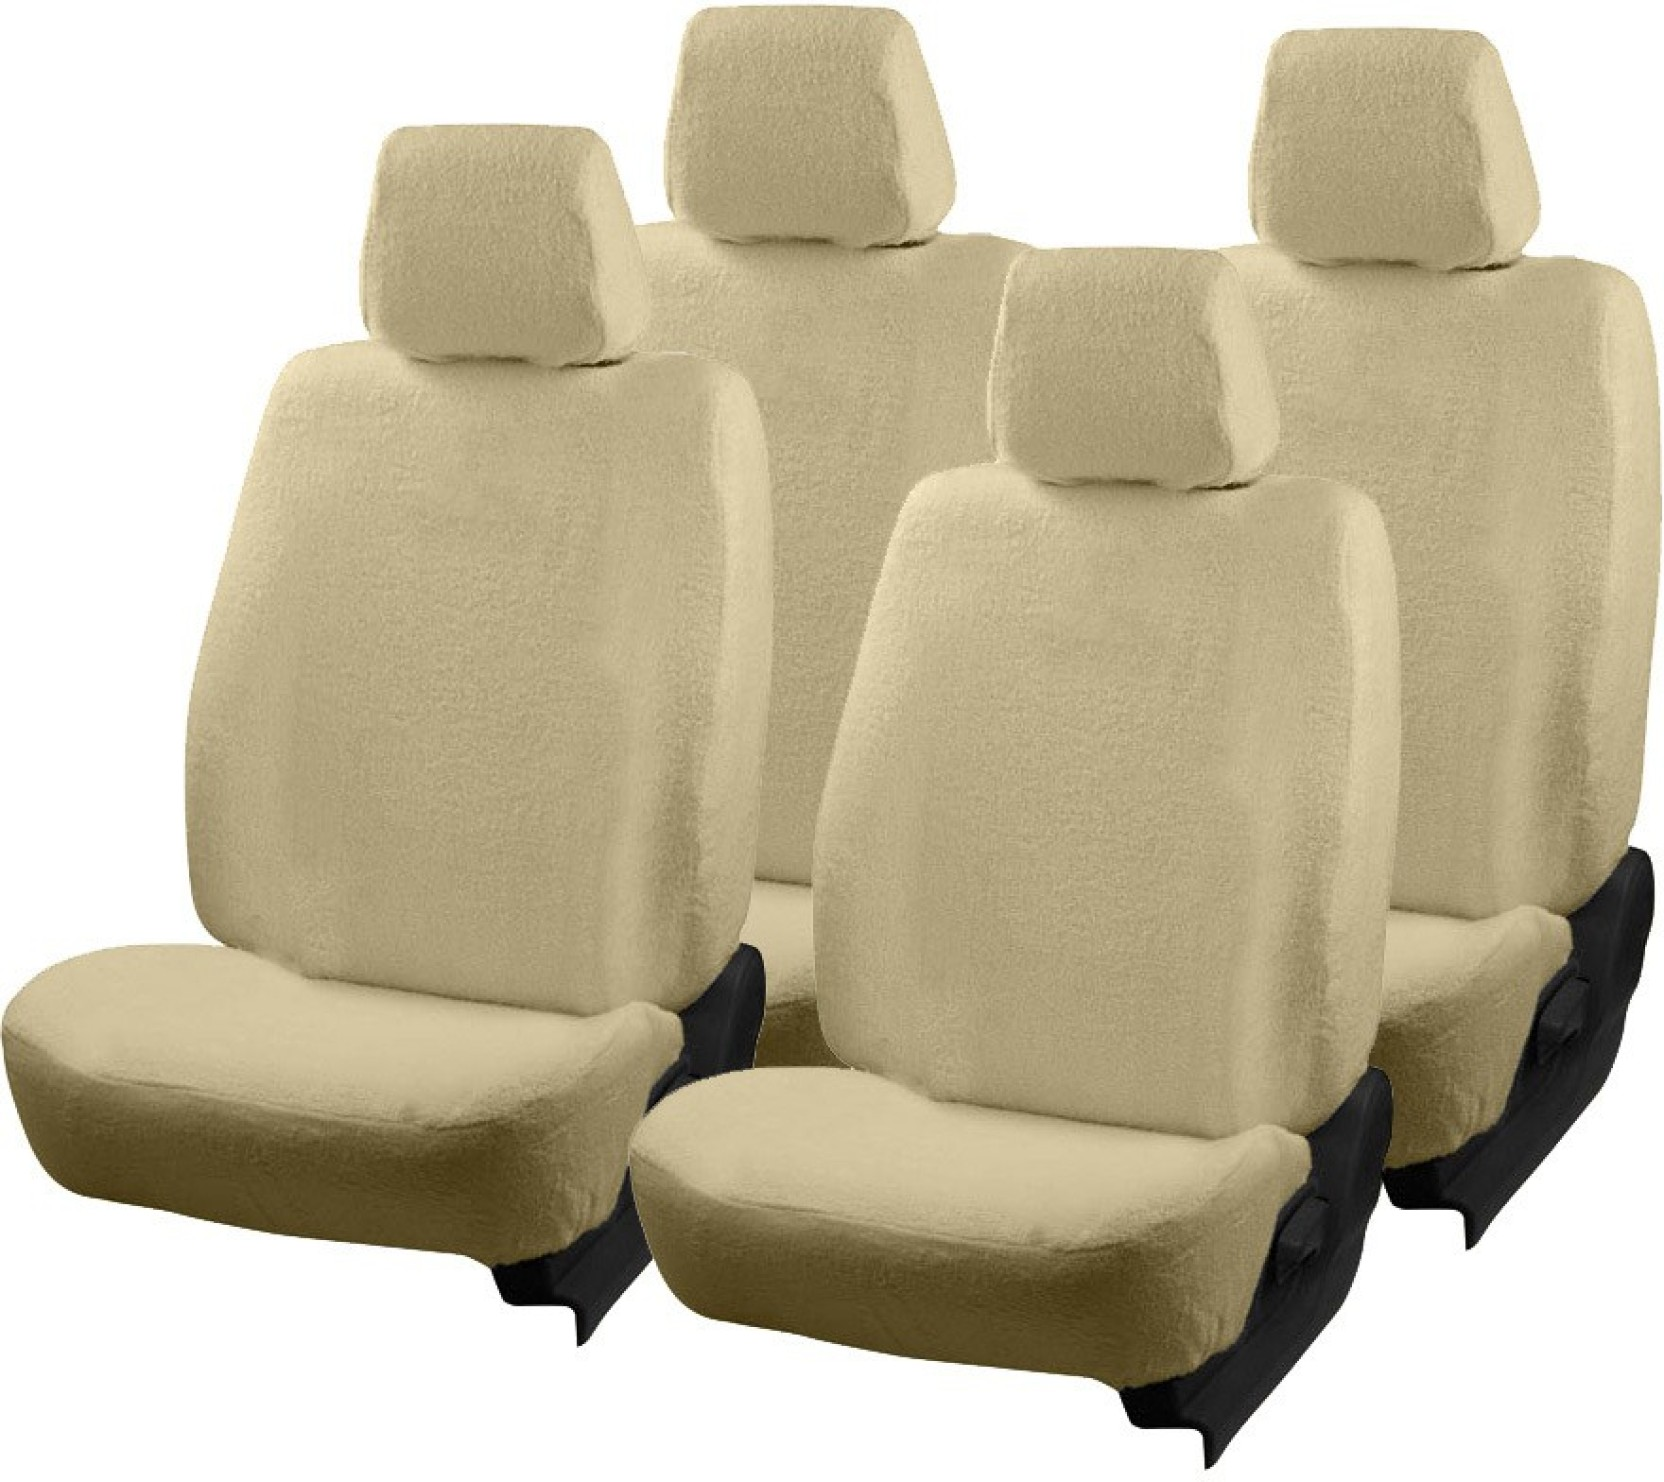 Cotton Car Seat Covers Uk